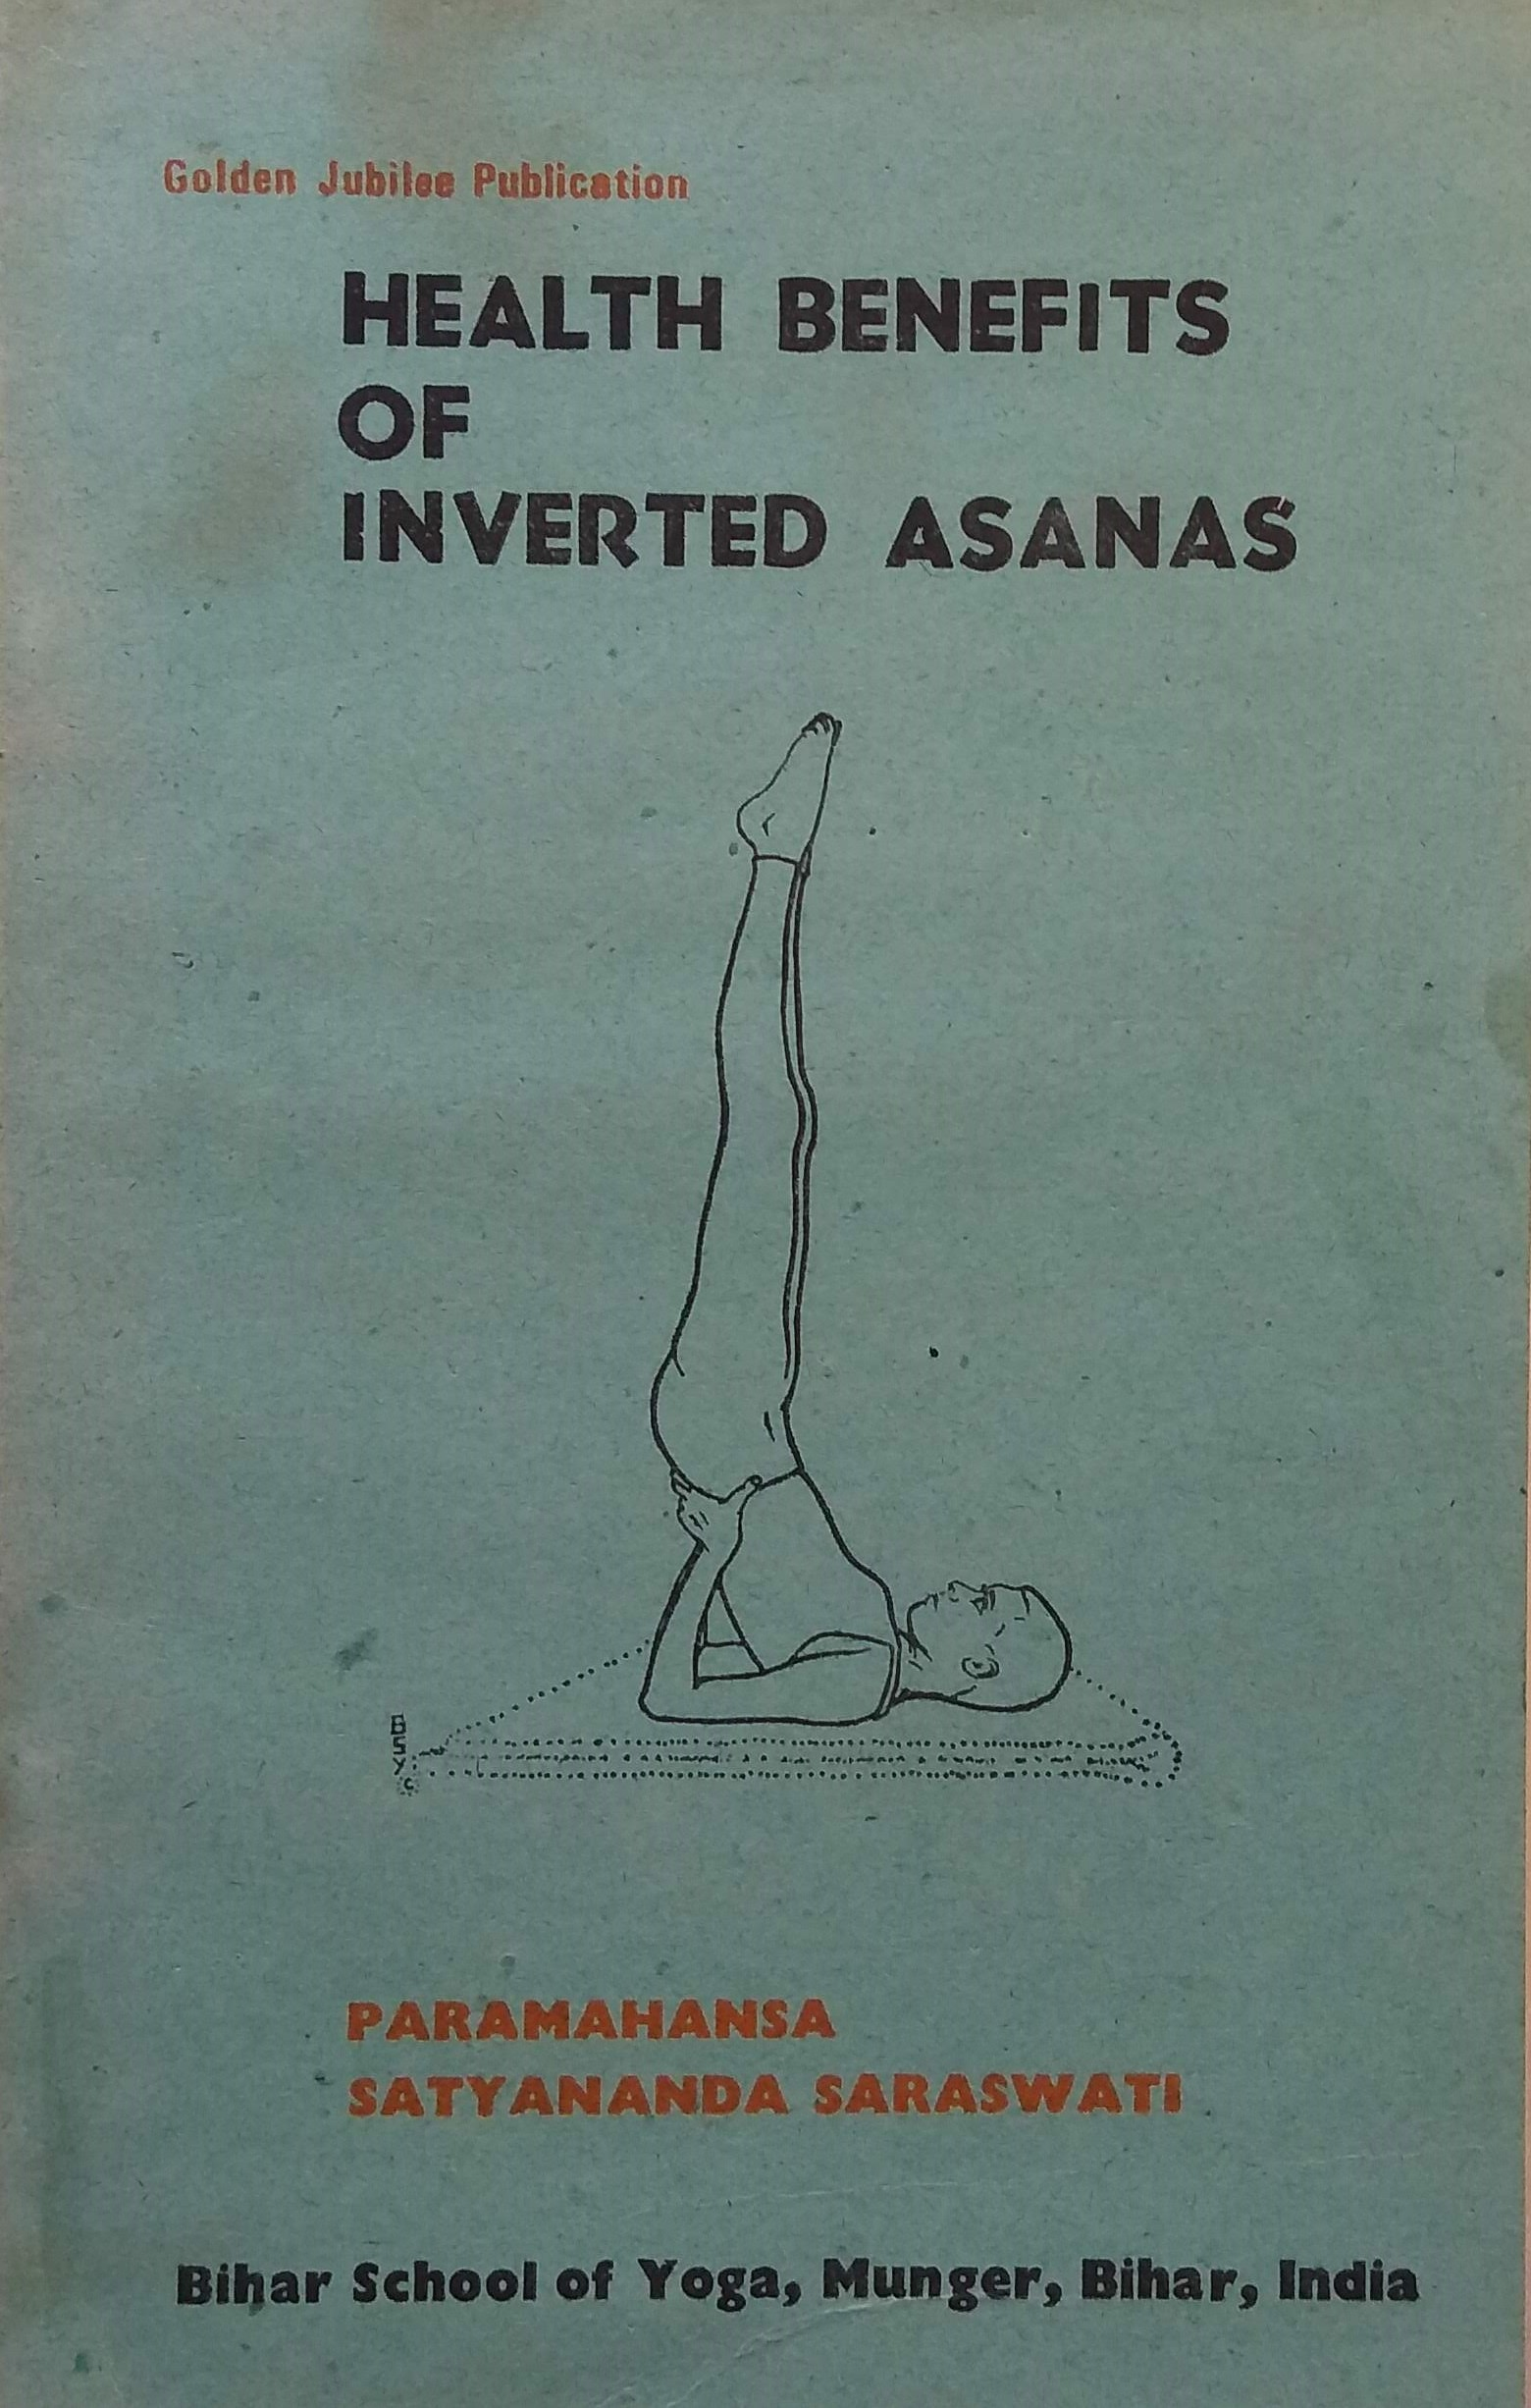 Health benefits of inverted asanas